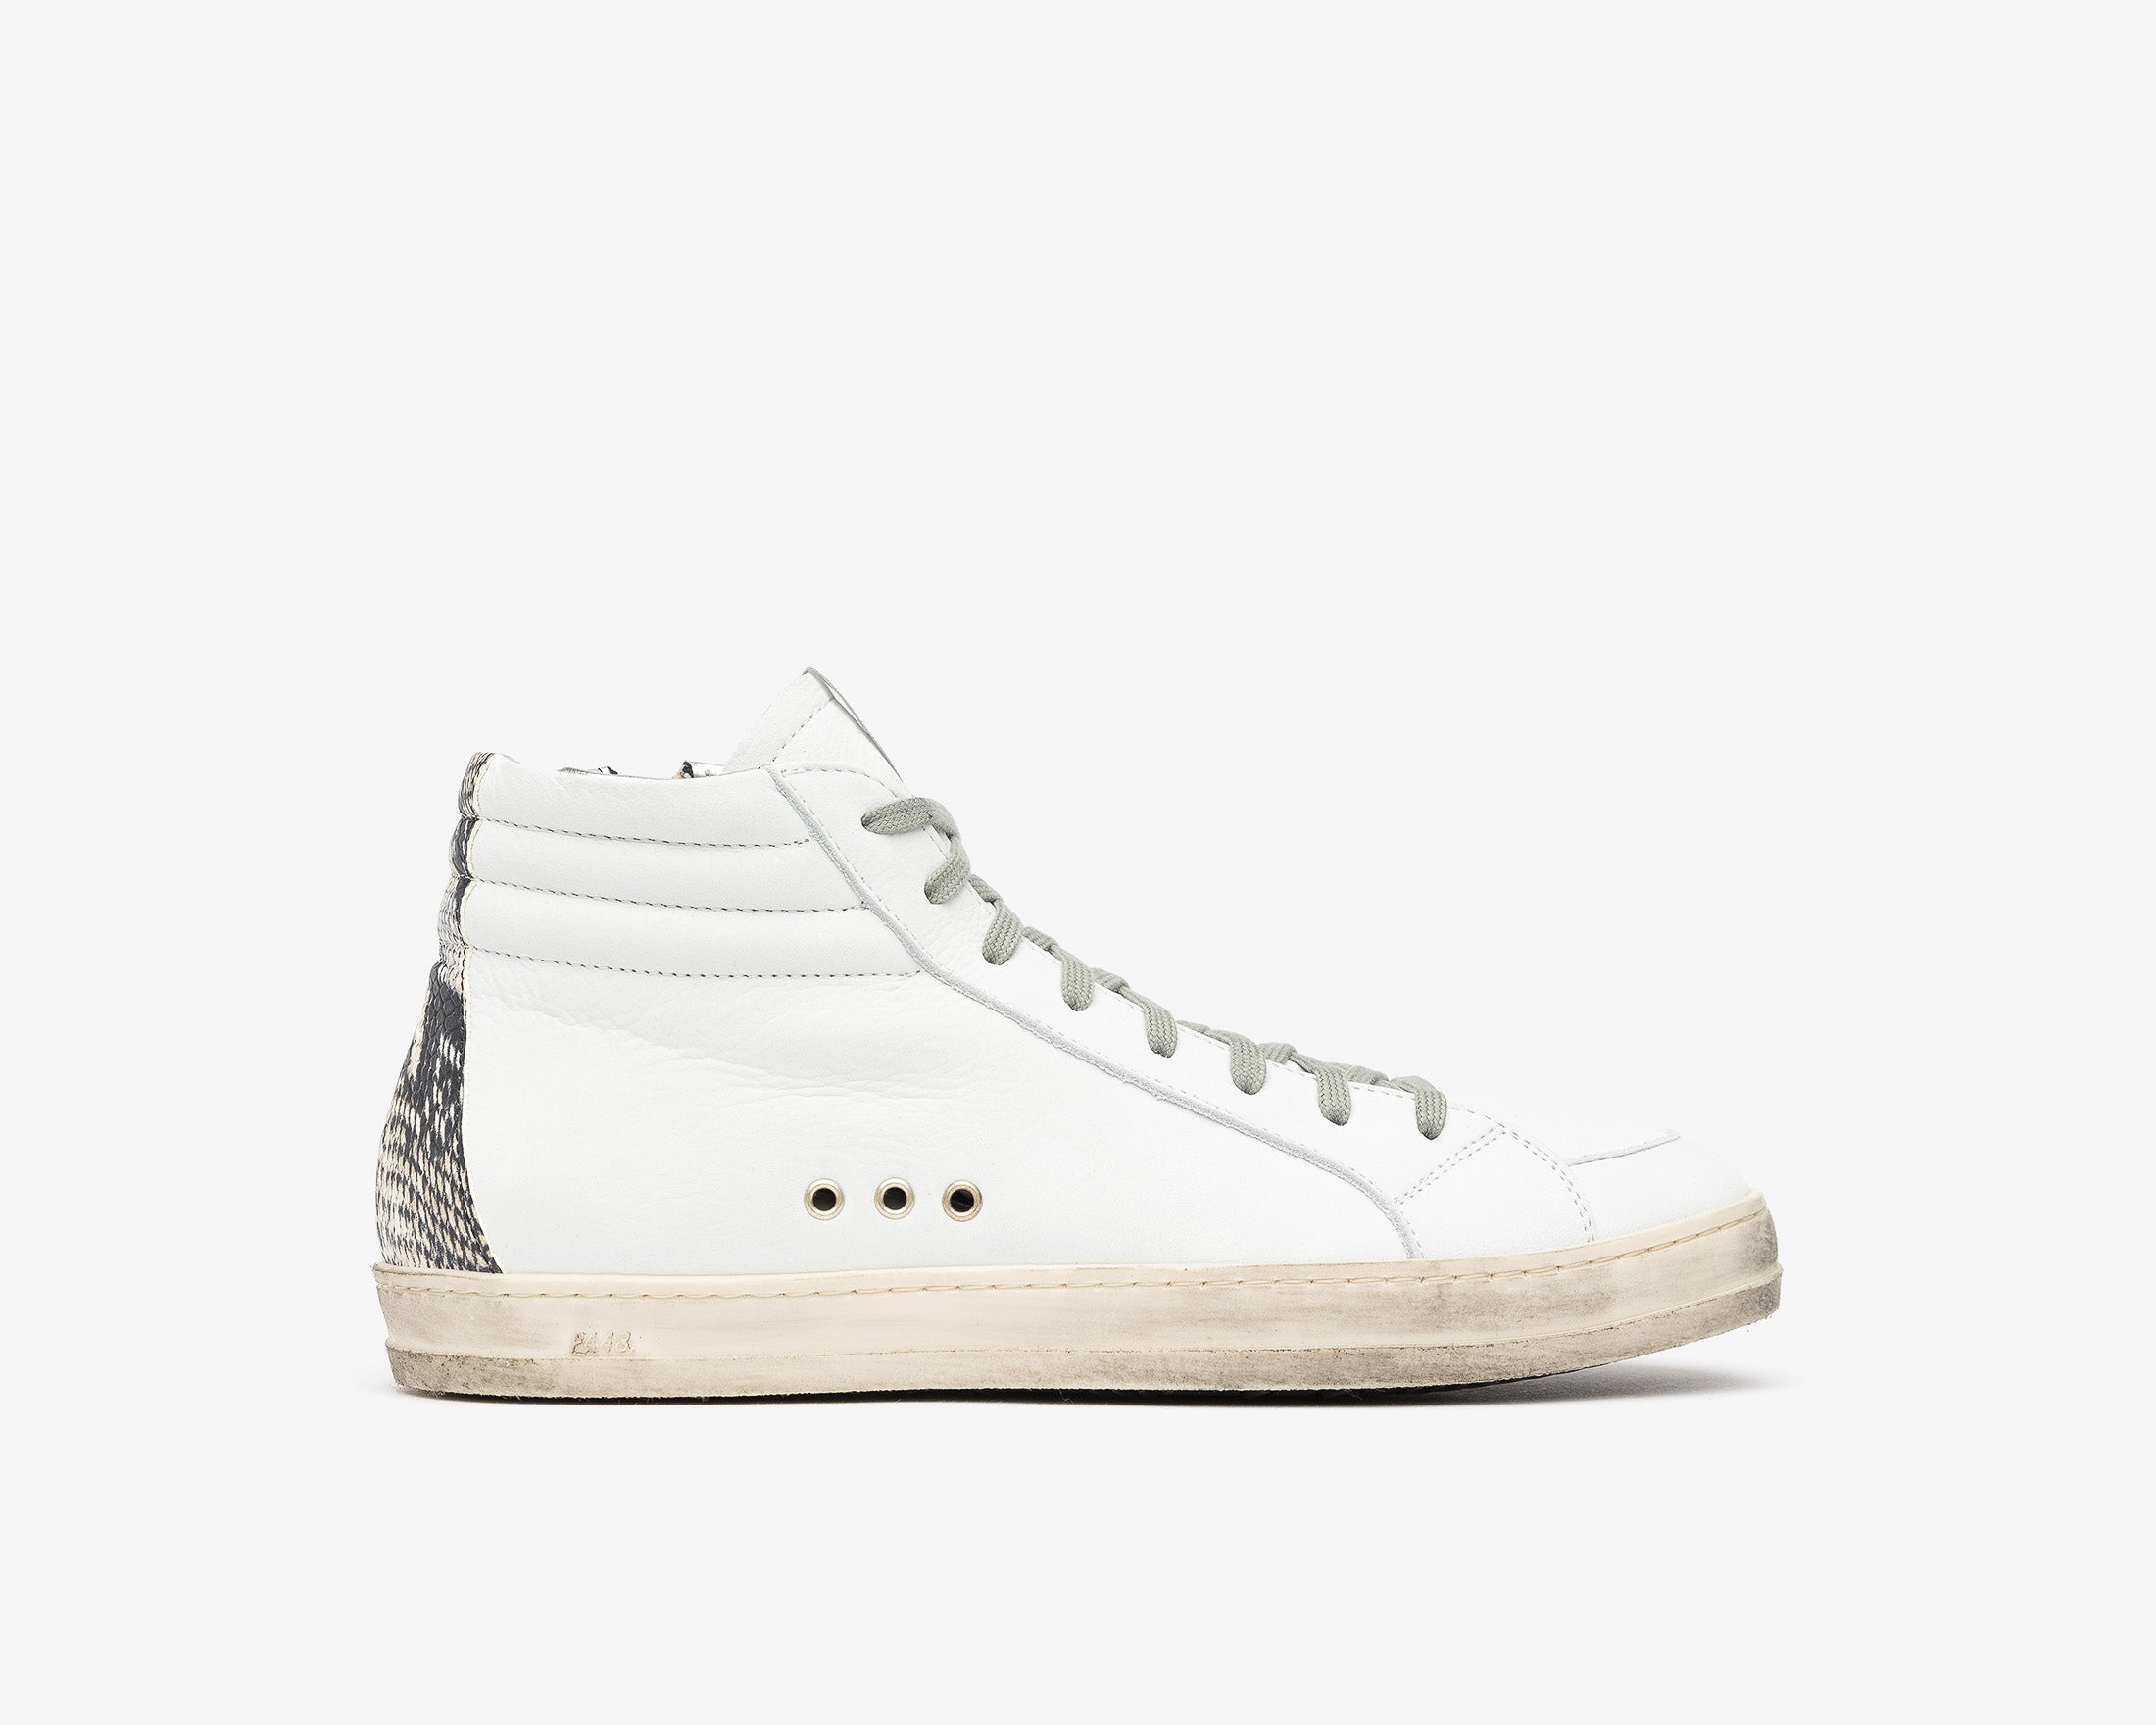 Skate High-Top Sneaker in White/Twister Python - Profile